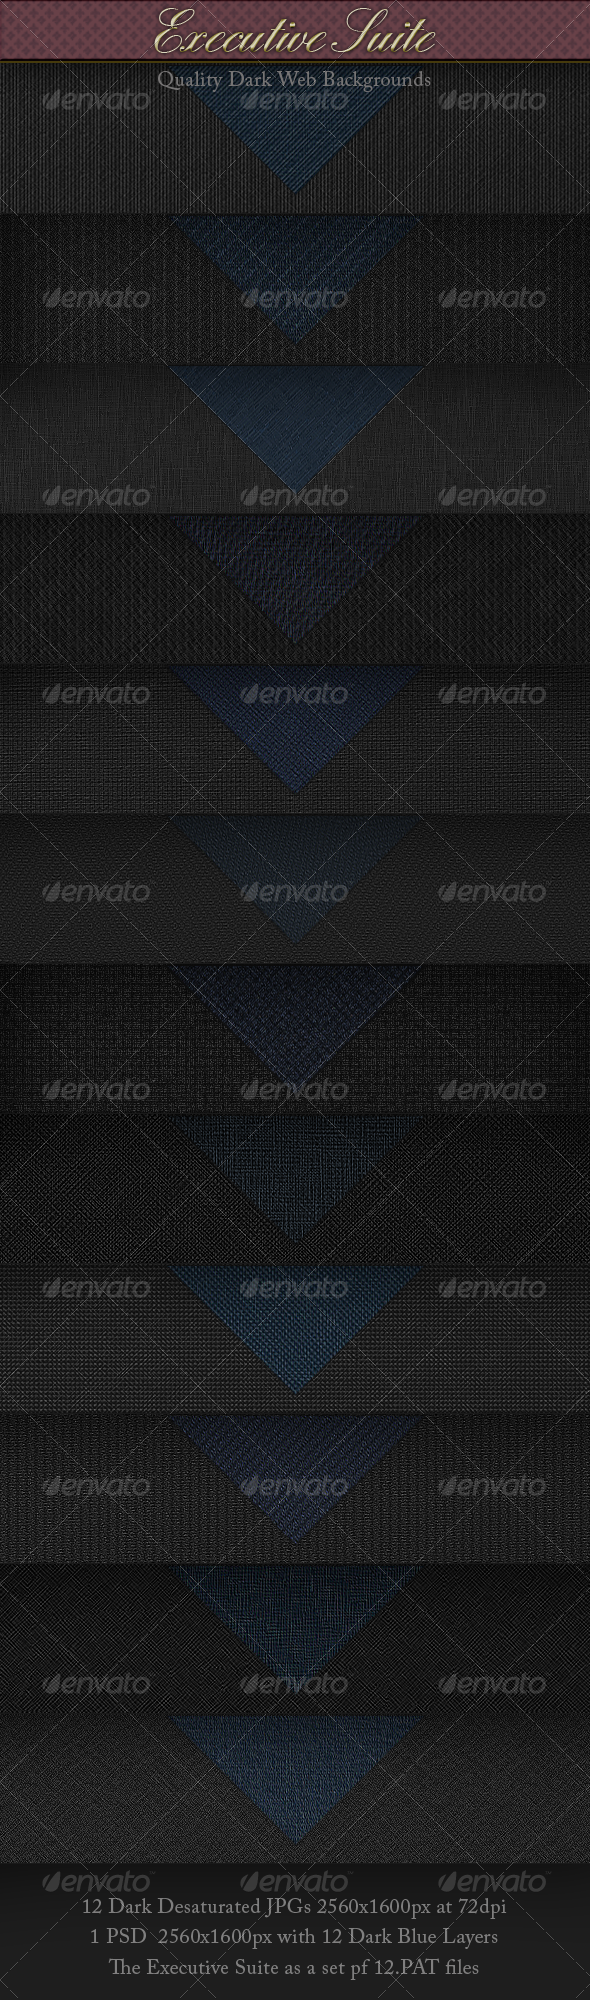 Executive Business Suit Fabric Backgrounds